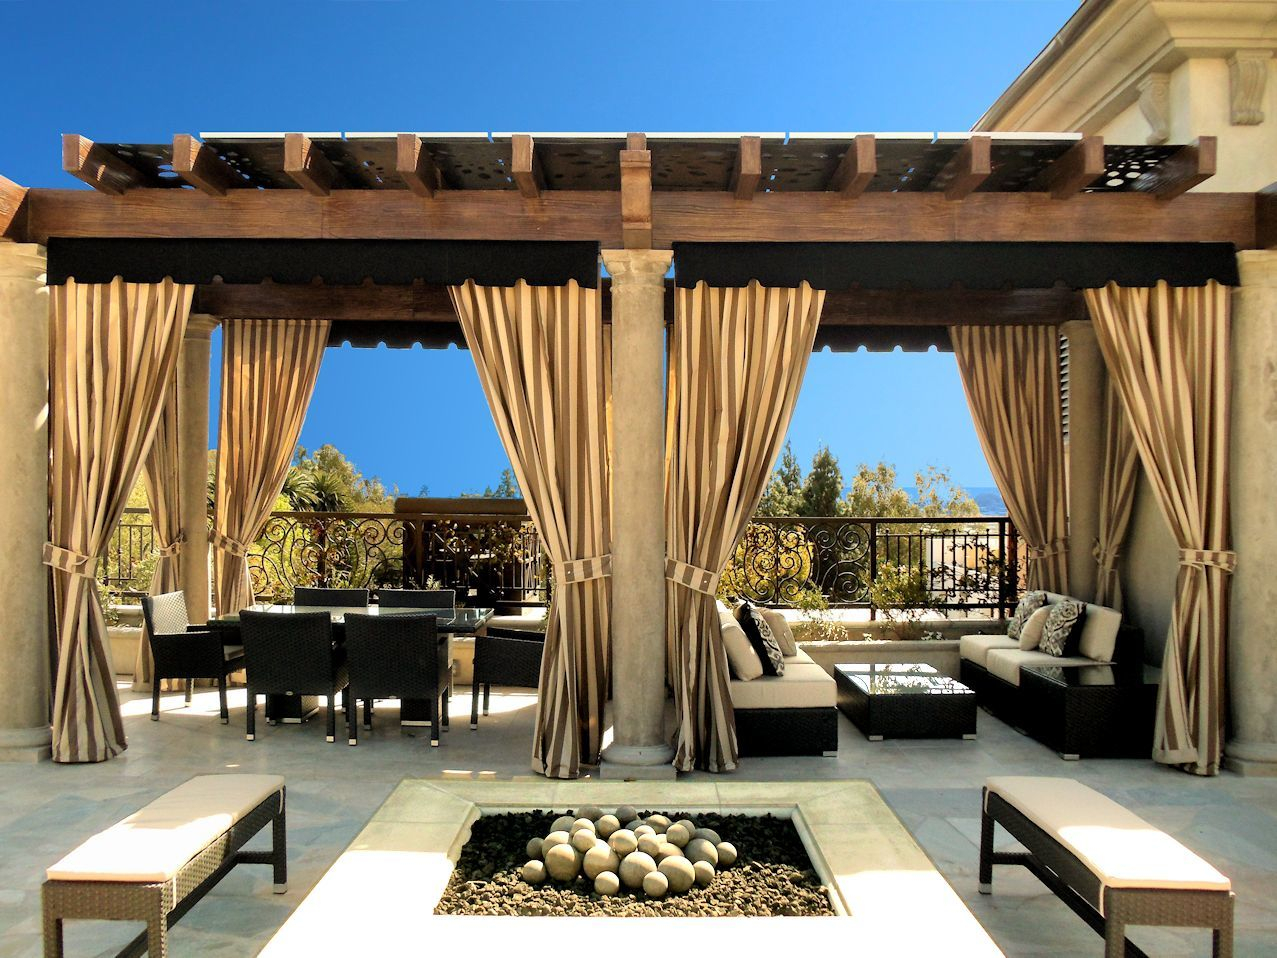 Relaxed Waterproof Outdoor Curtains Best Design Dma Homes 57873 In Sizing 1277 X 958